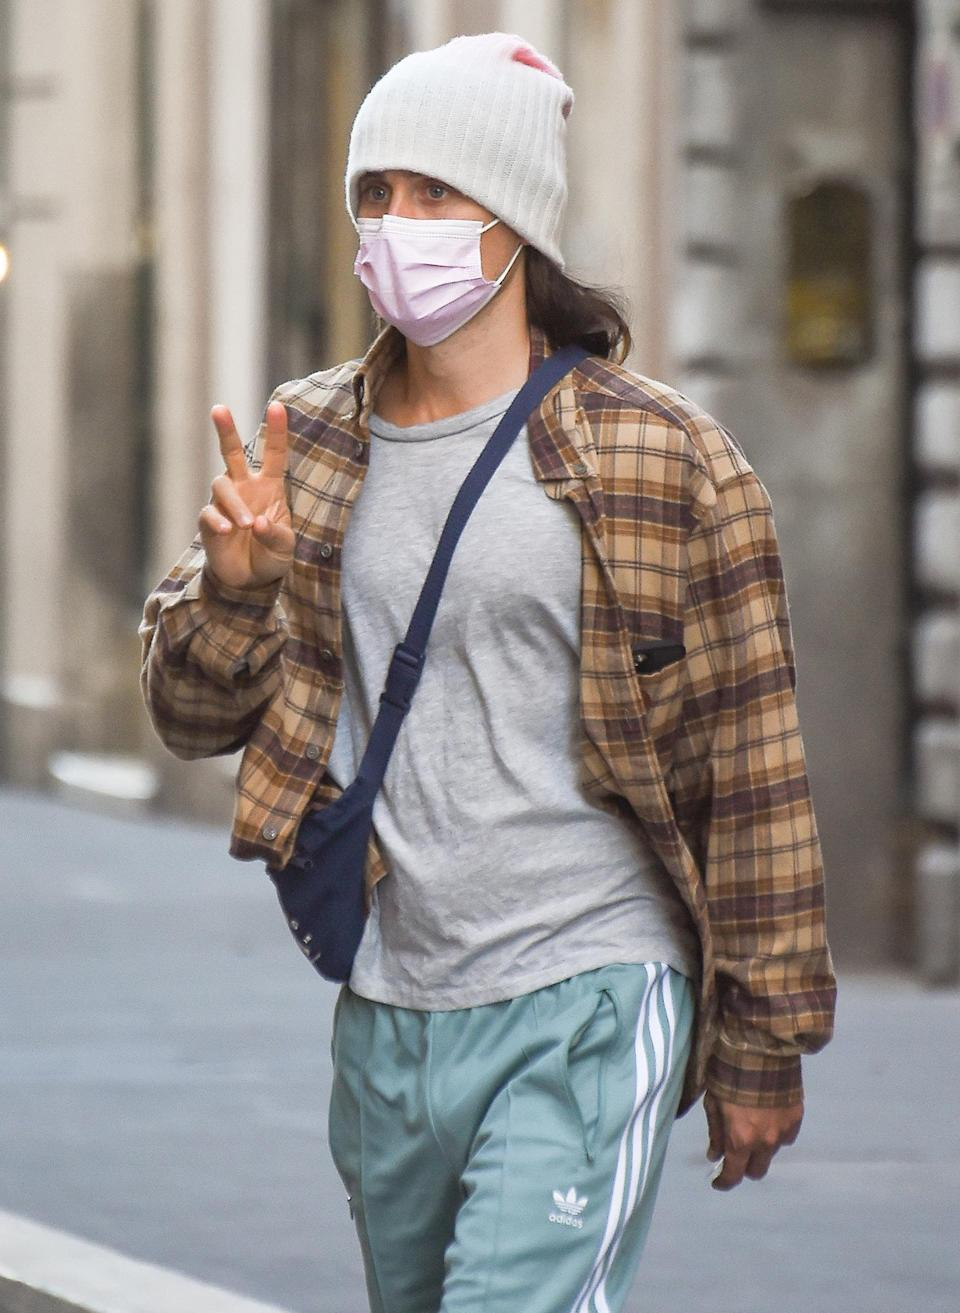 <p>Jared Leto shares a peace sign as he walks through Via del Corso on Sunday in Rome.</p>